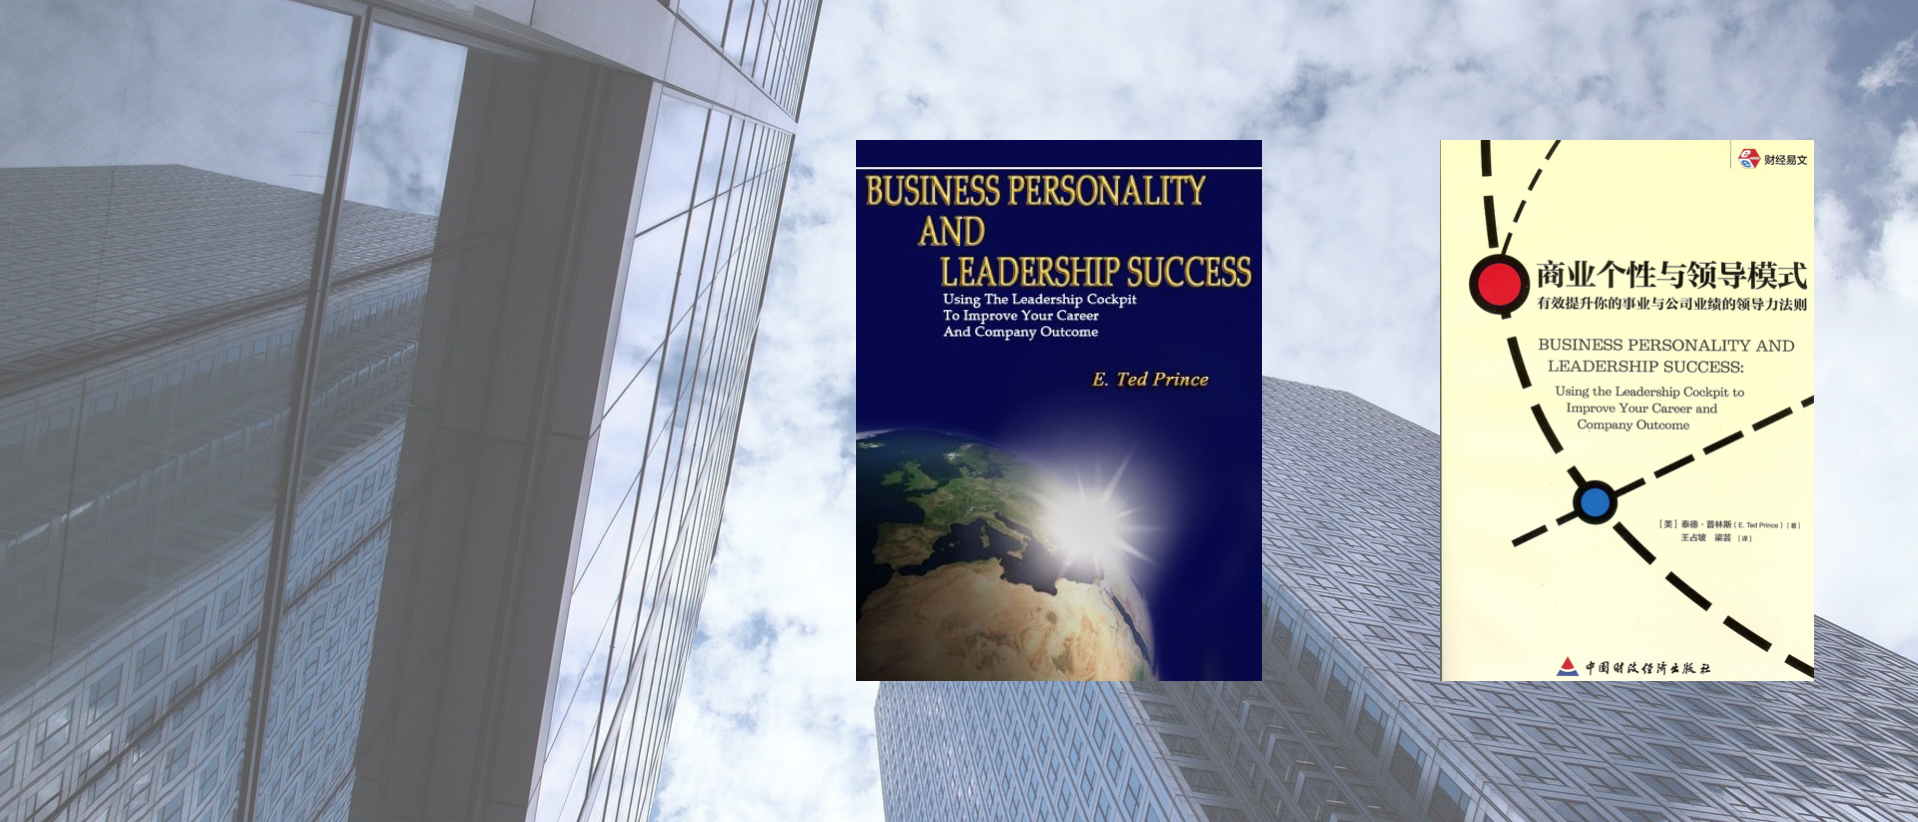 Business Personality and Leadership SuccessBusiness outcomes predicted from behavior